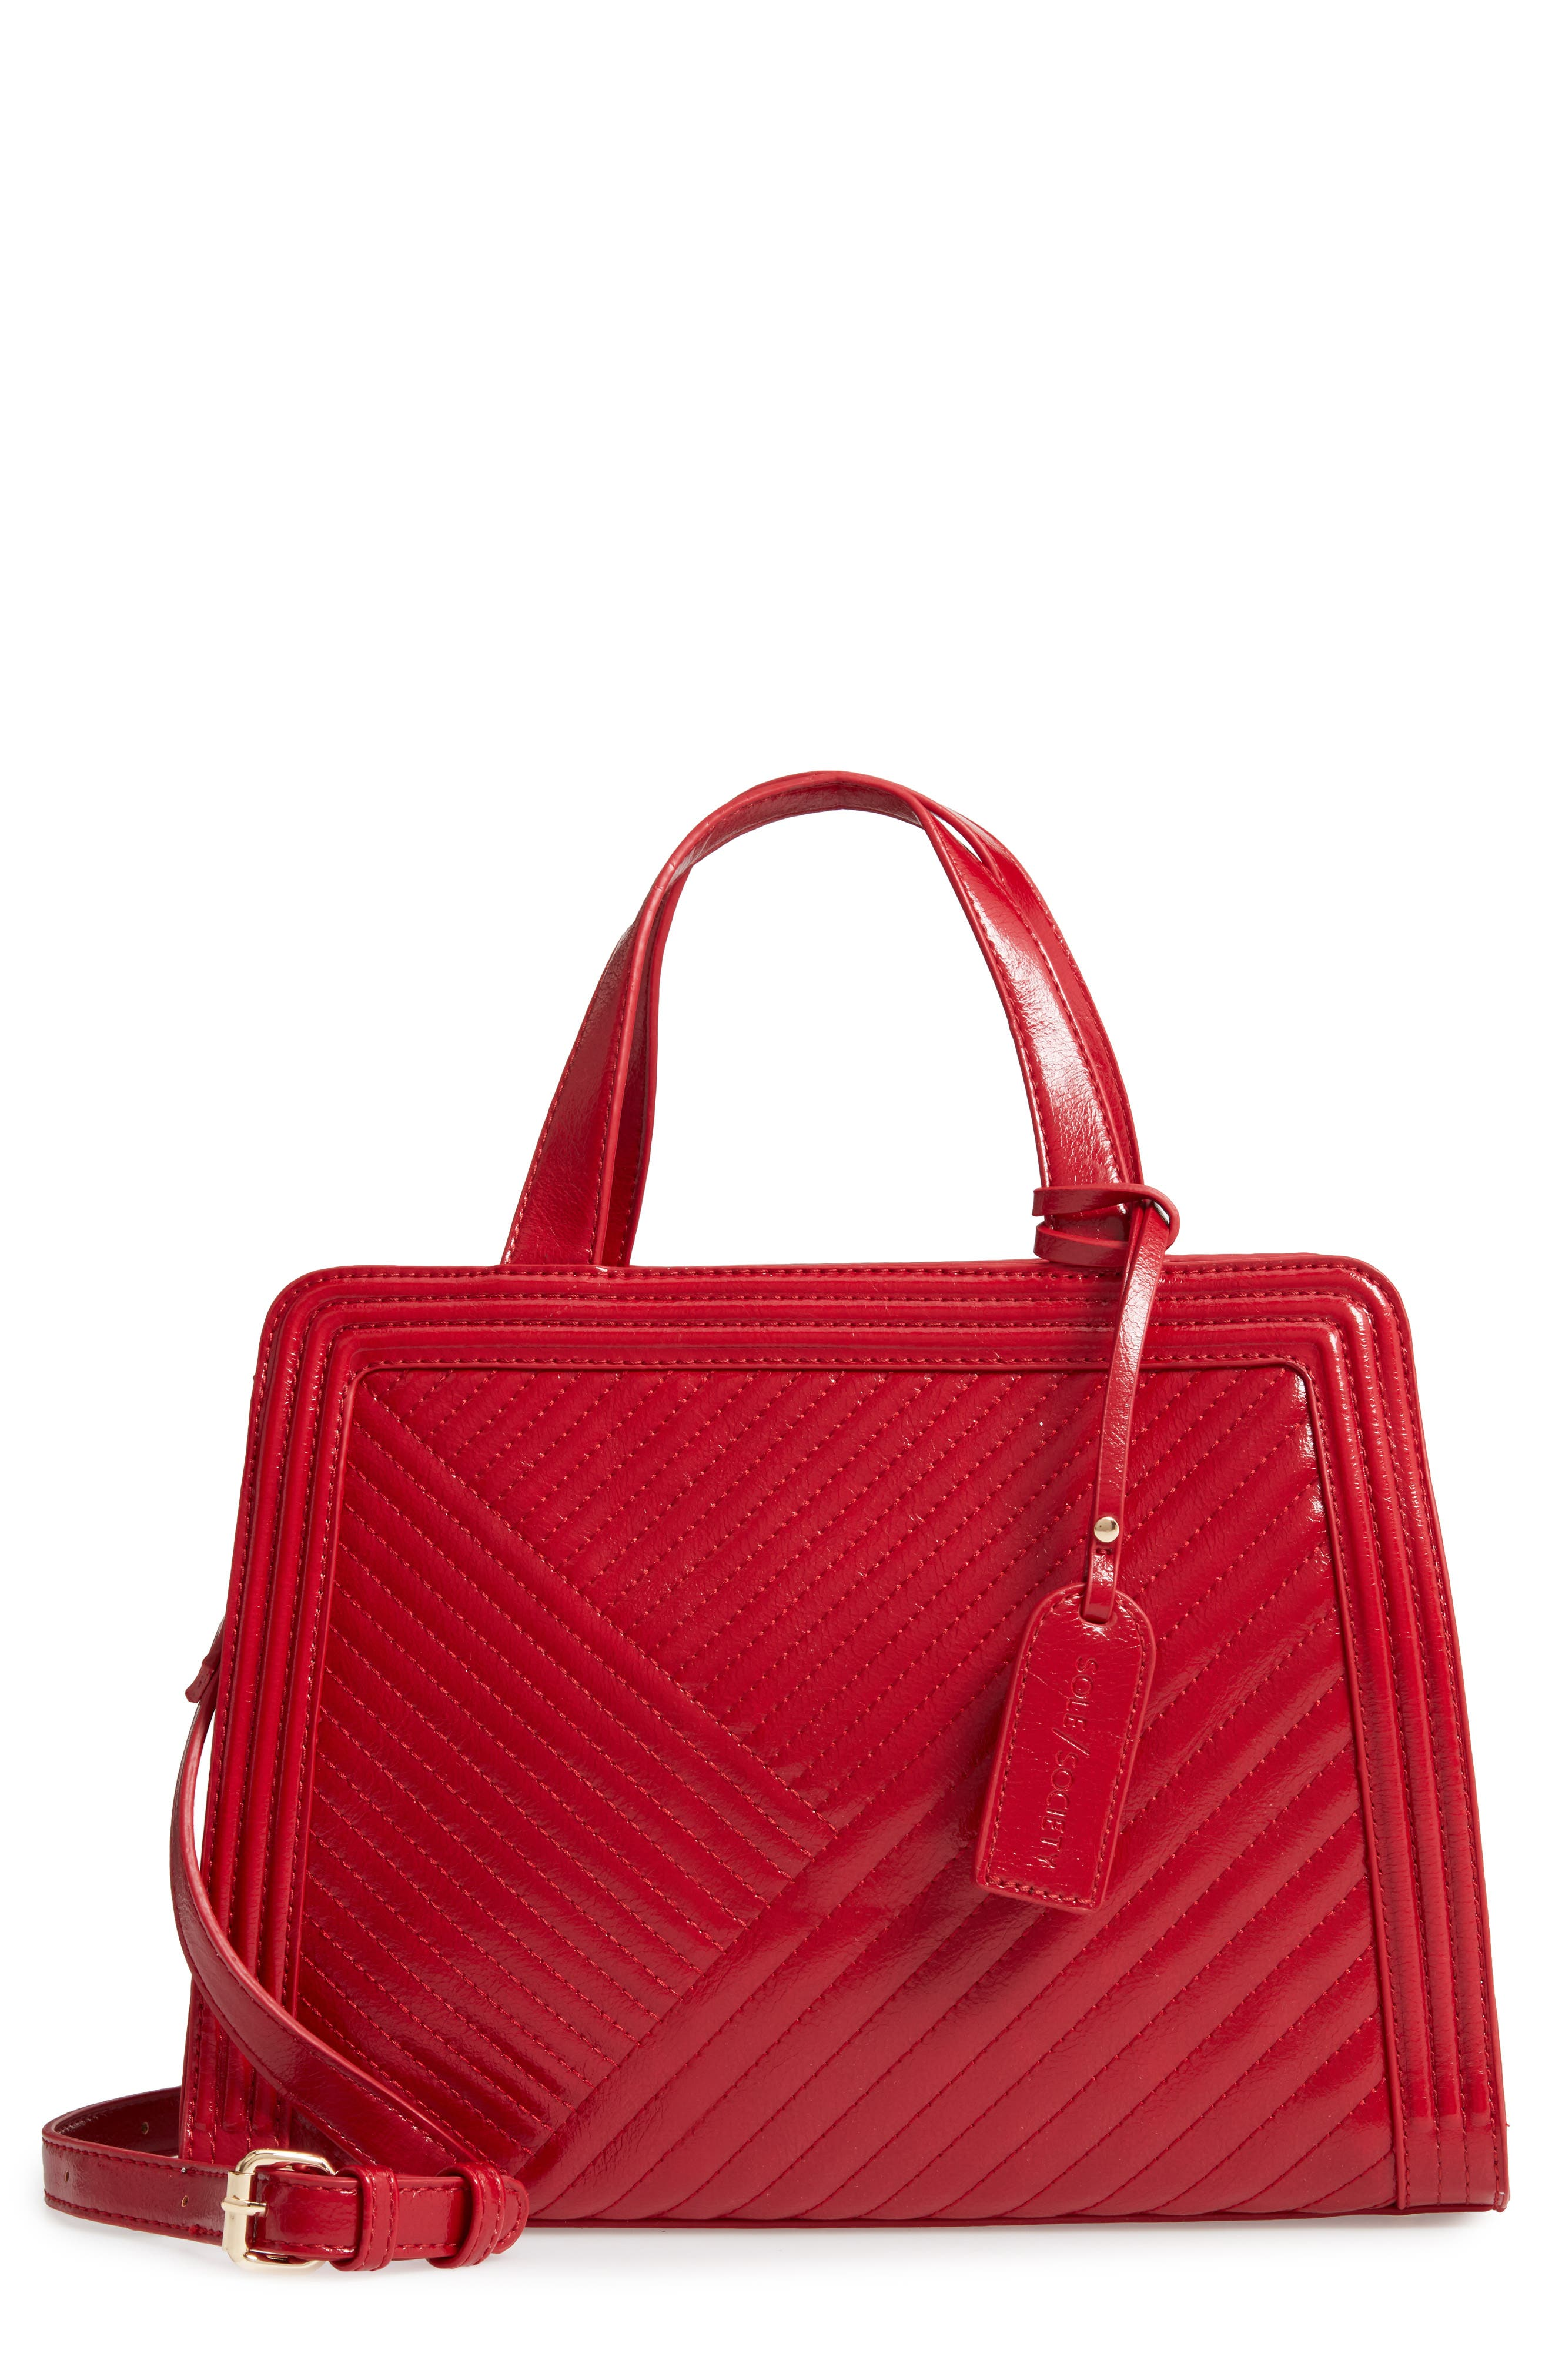 SOLE SOCIETY, Aisln Faux Leather Satchel, Main thumbnail 1, color, RED